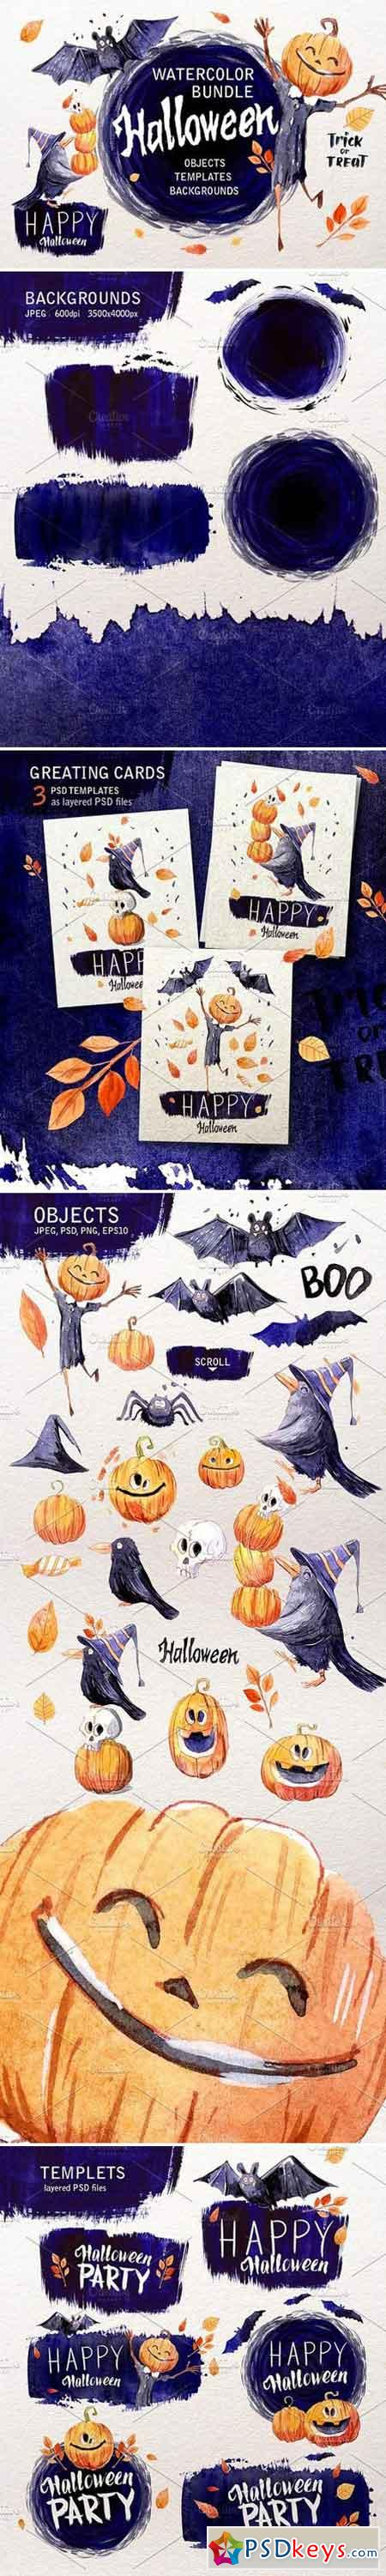 Halloween Watercolor set! 1871736